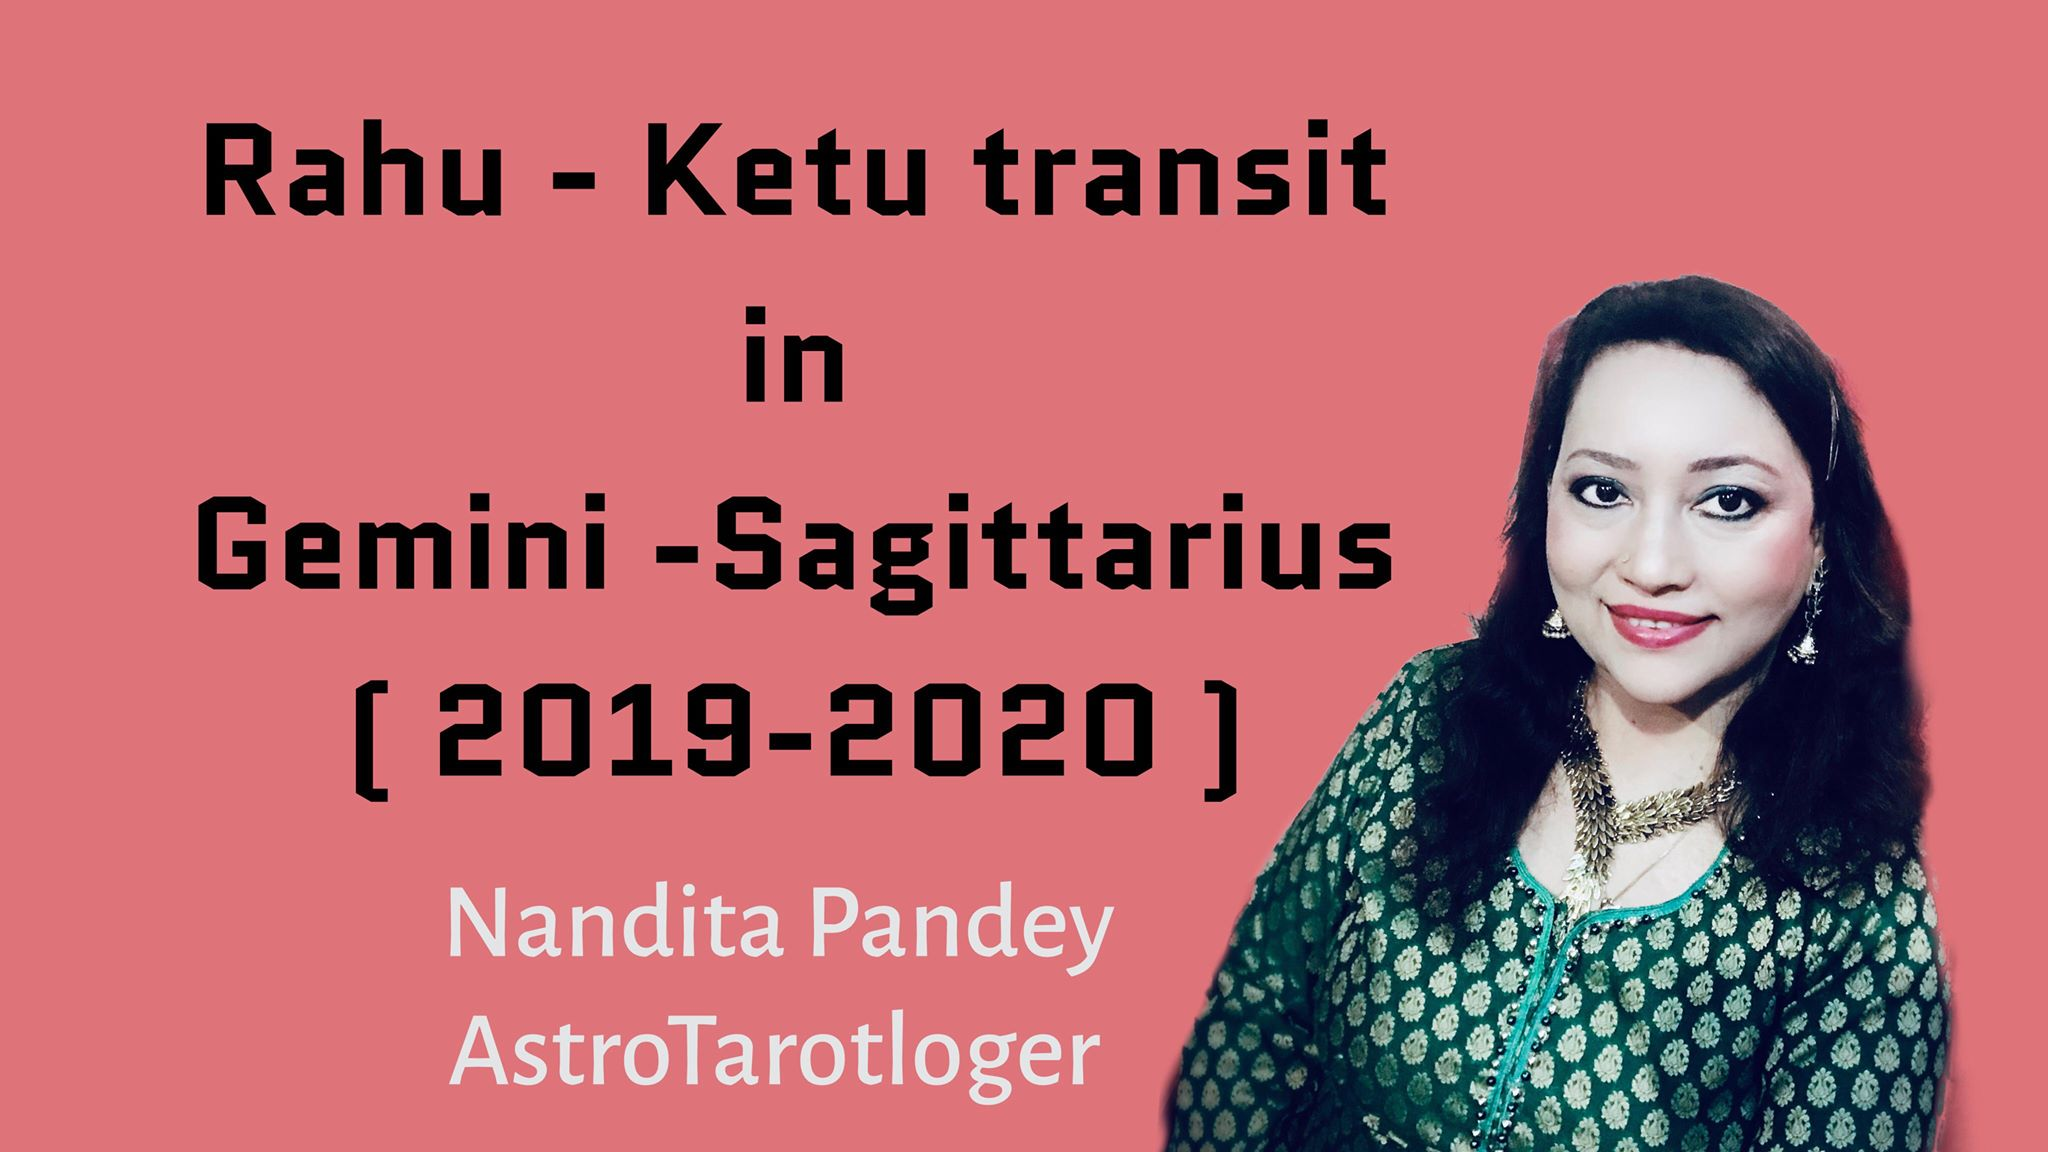 Rahu/Ketu transits to Gemini/Sagittarius    click here to check on